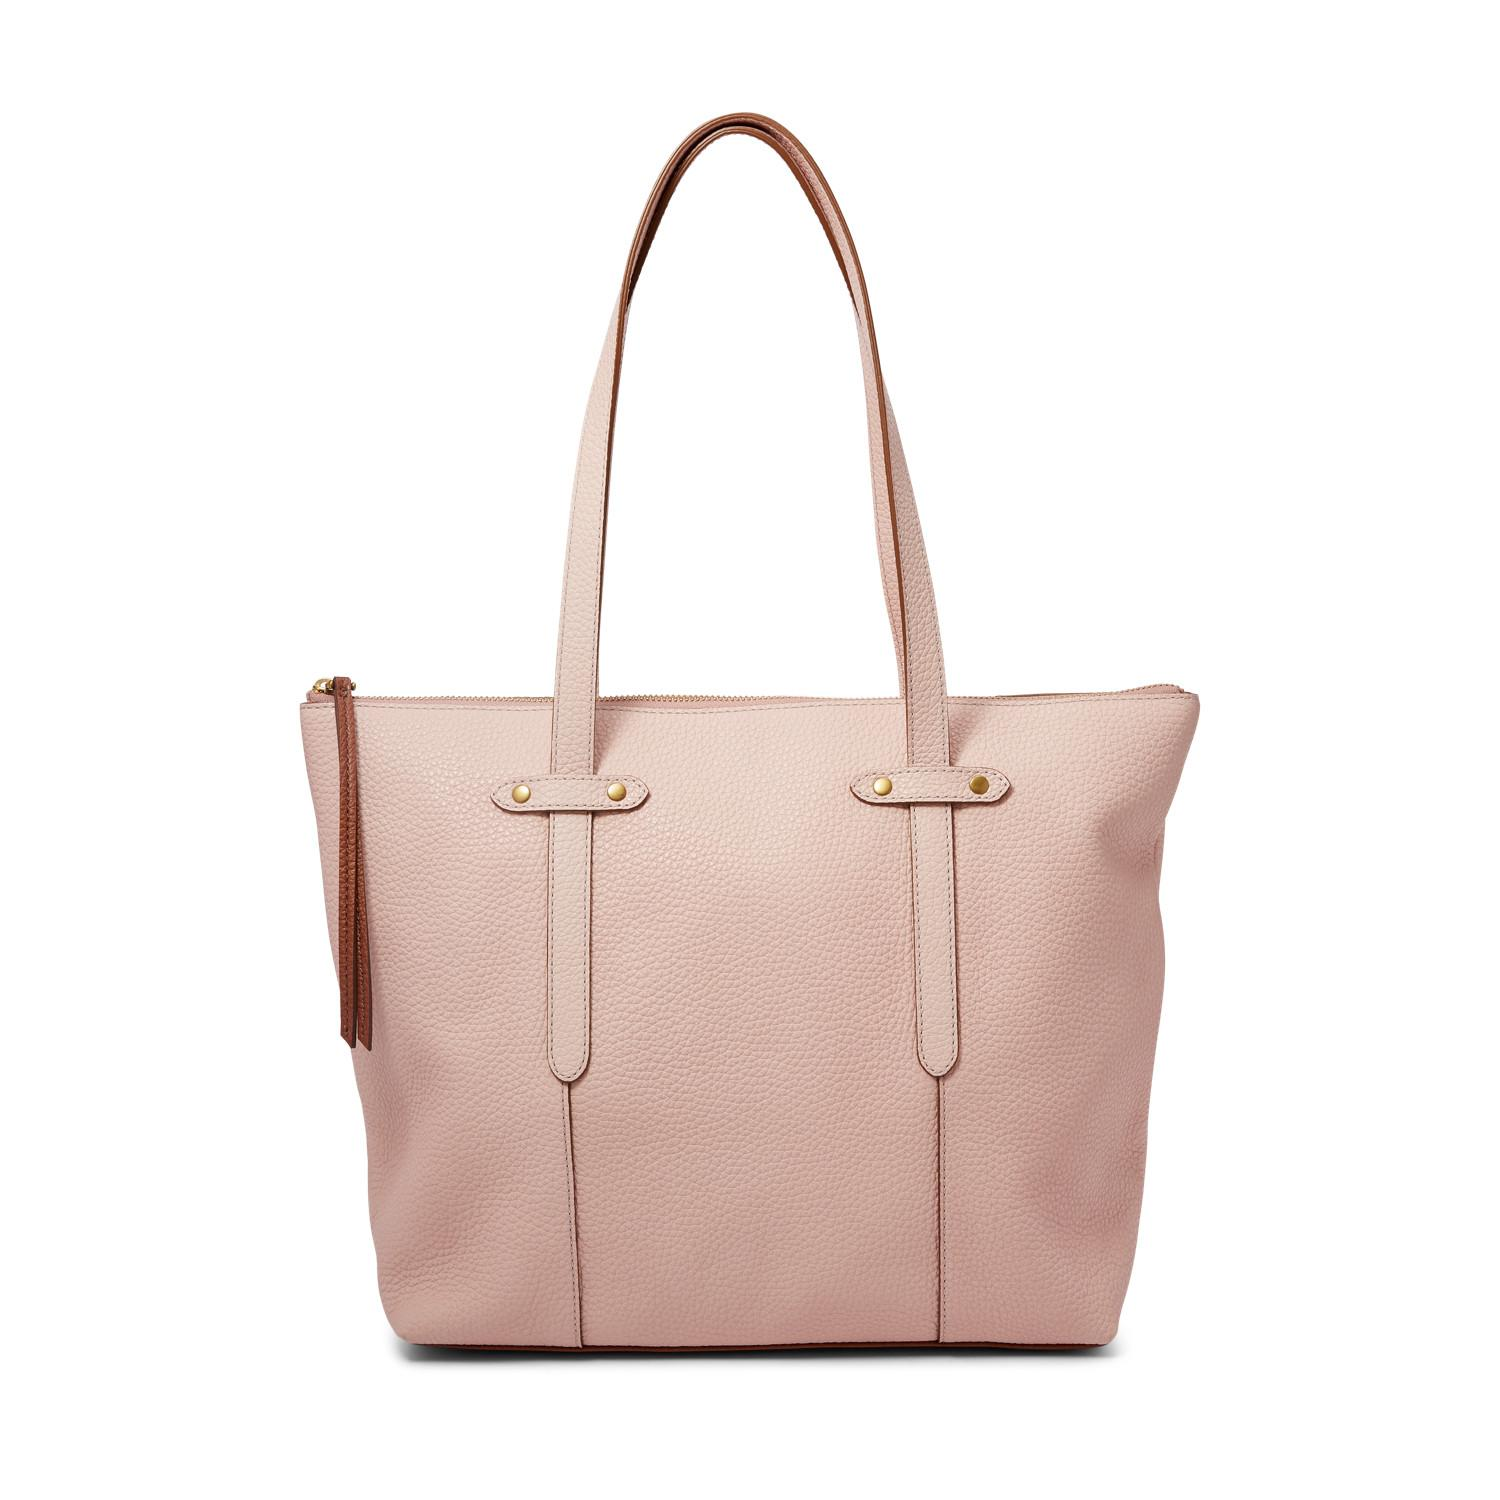 c149028ac Fossil Felicity Tote Handbags Dusty Rose in Pink - Lyst